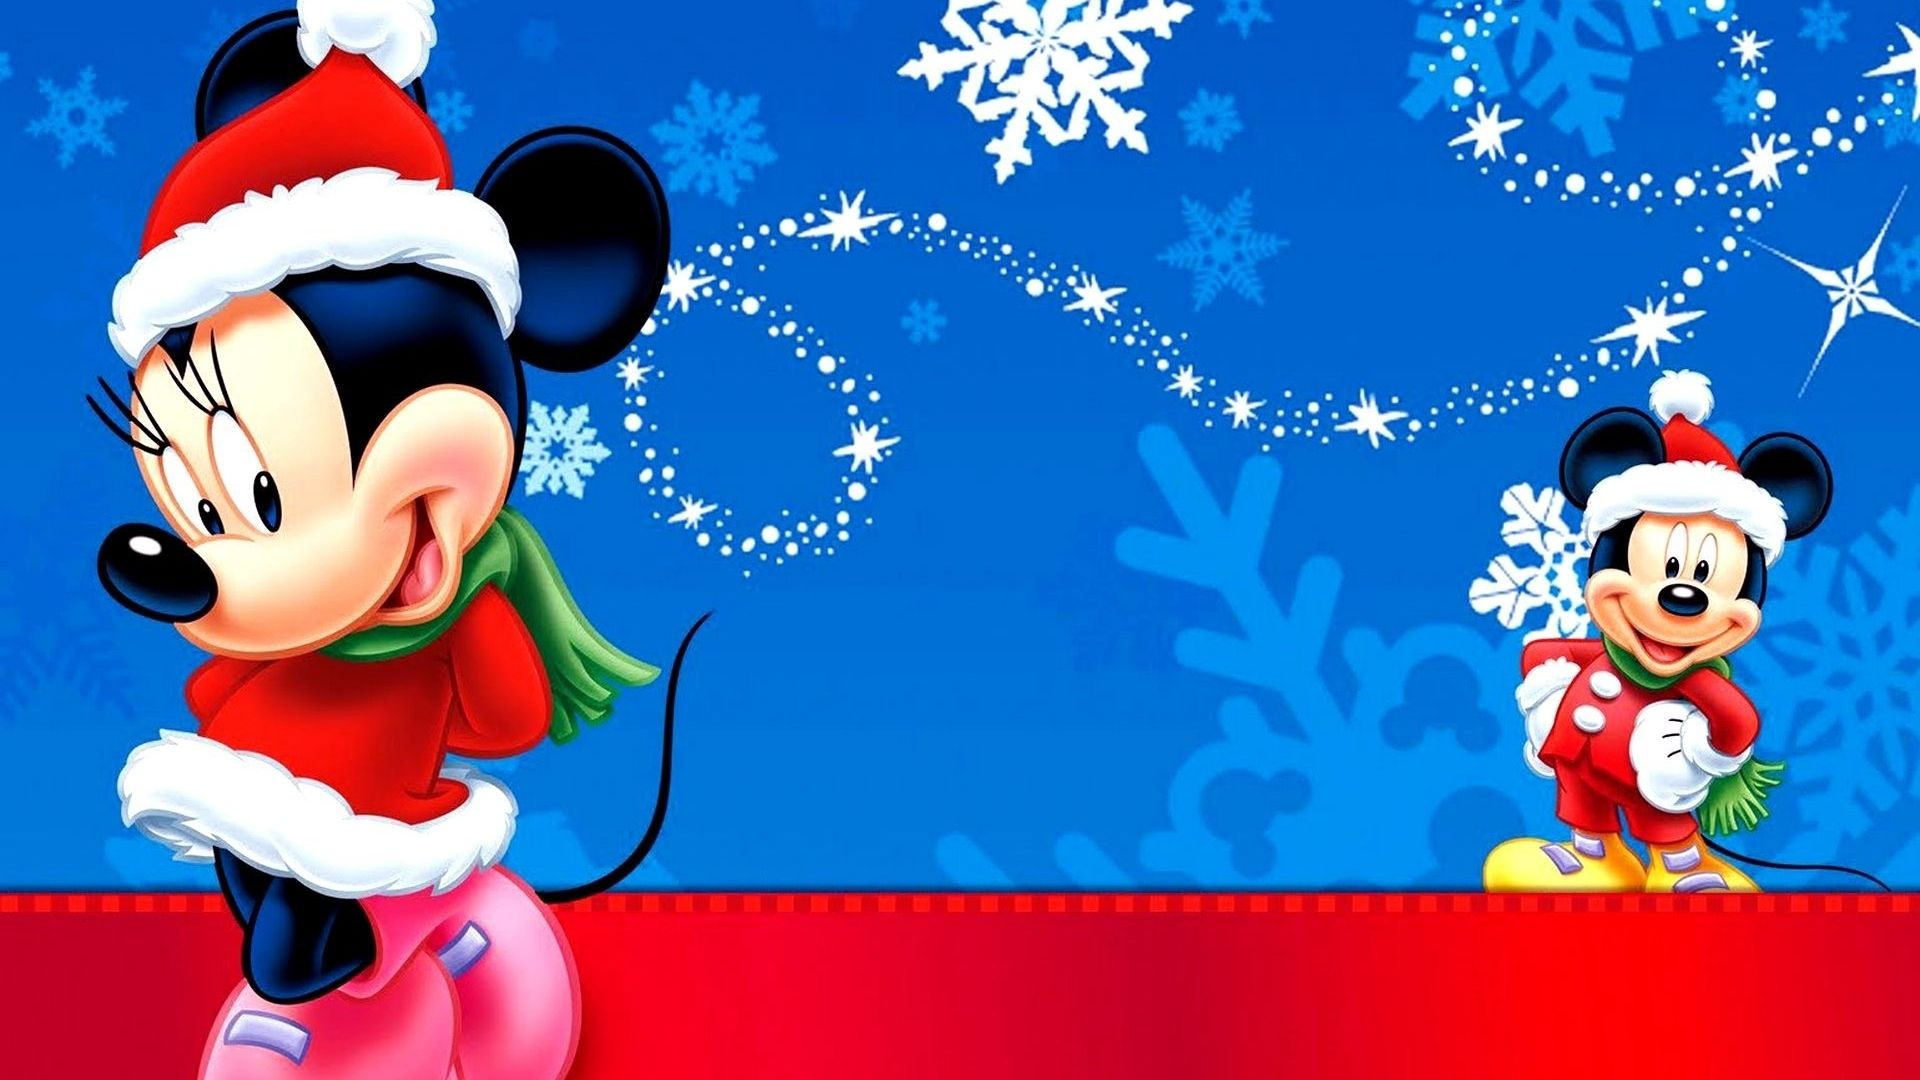 1920x1080 Happy New Year Merry Christmas Mac Wallpaper Download ...